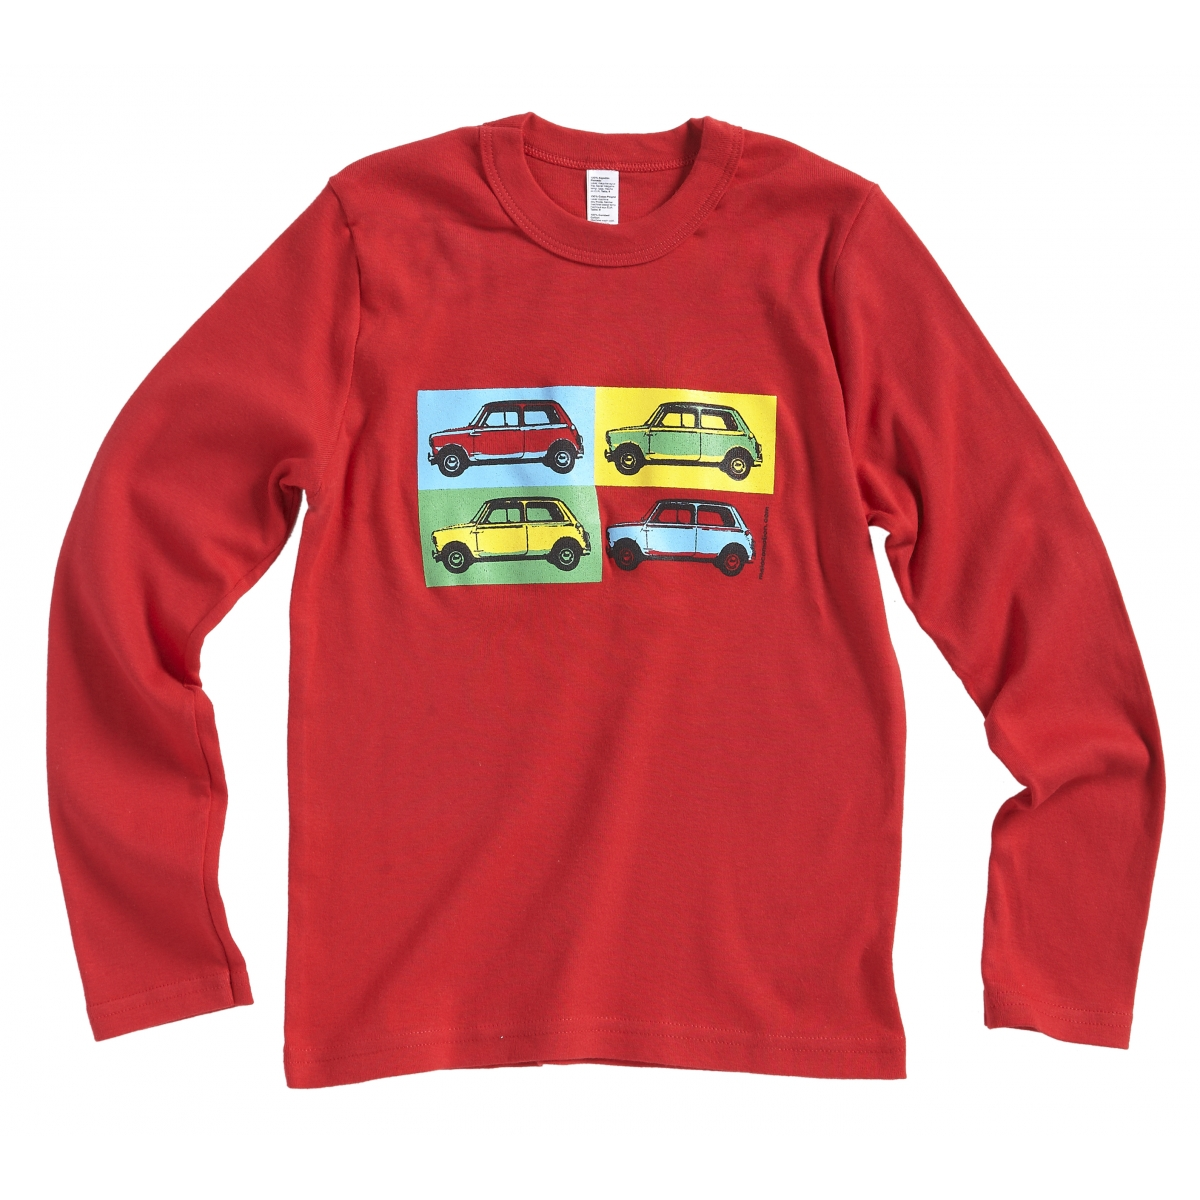 Austin Mini pop art t-shirt - red